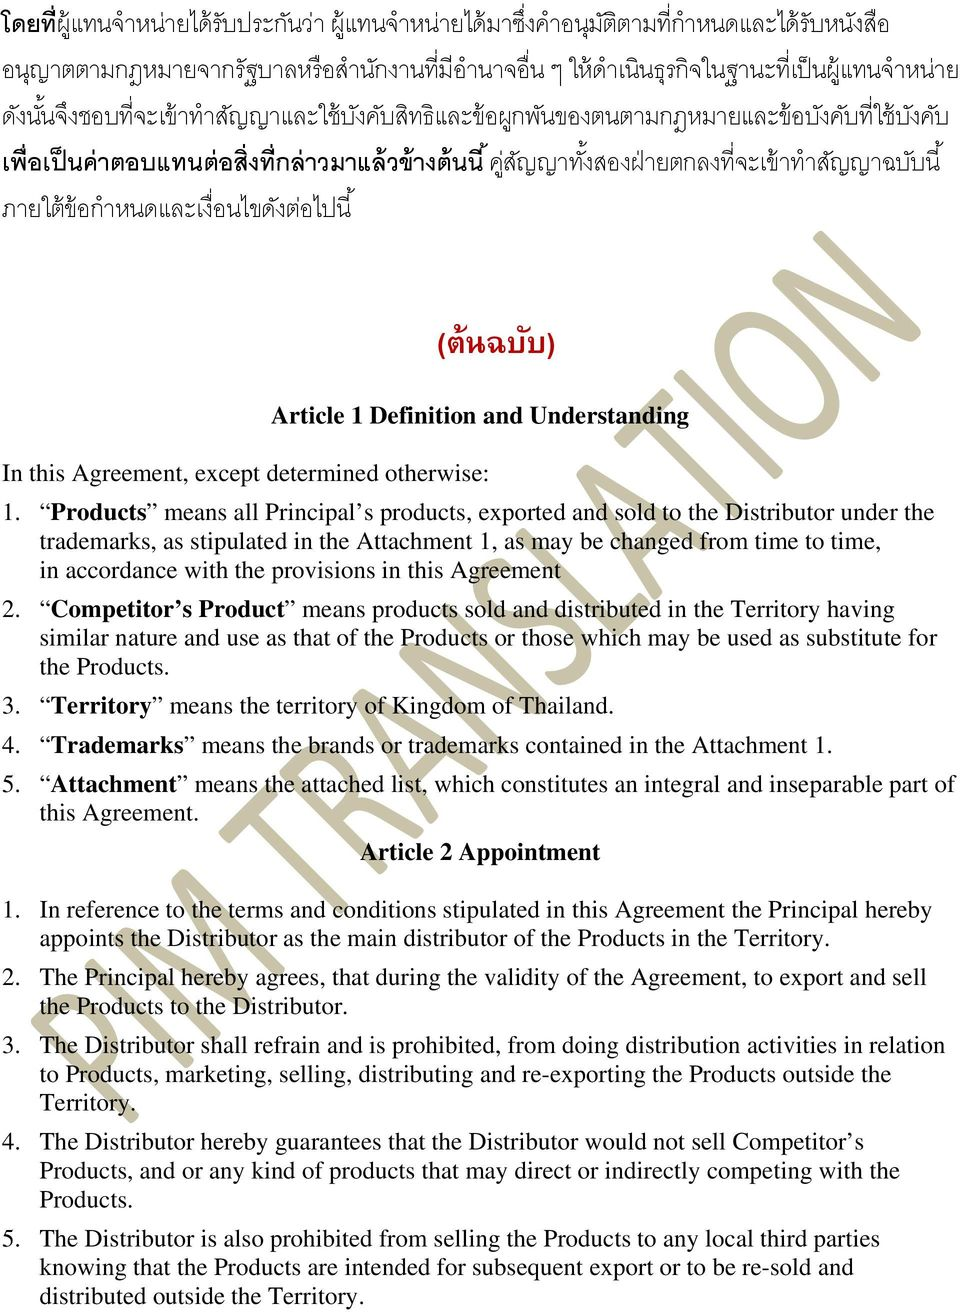 อนไขด งต อไปน (ต นฉบ บ) Article 1 Definition and Understanding In this Agreement, except determined otherwise: 1.